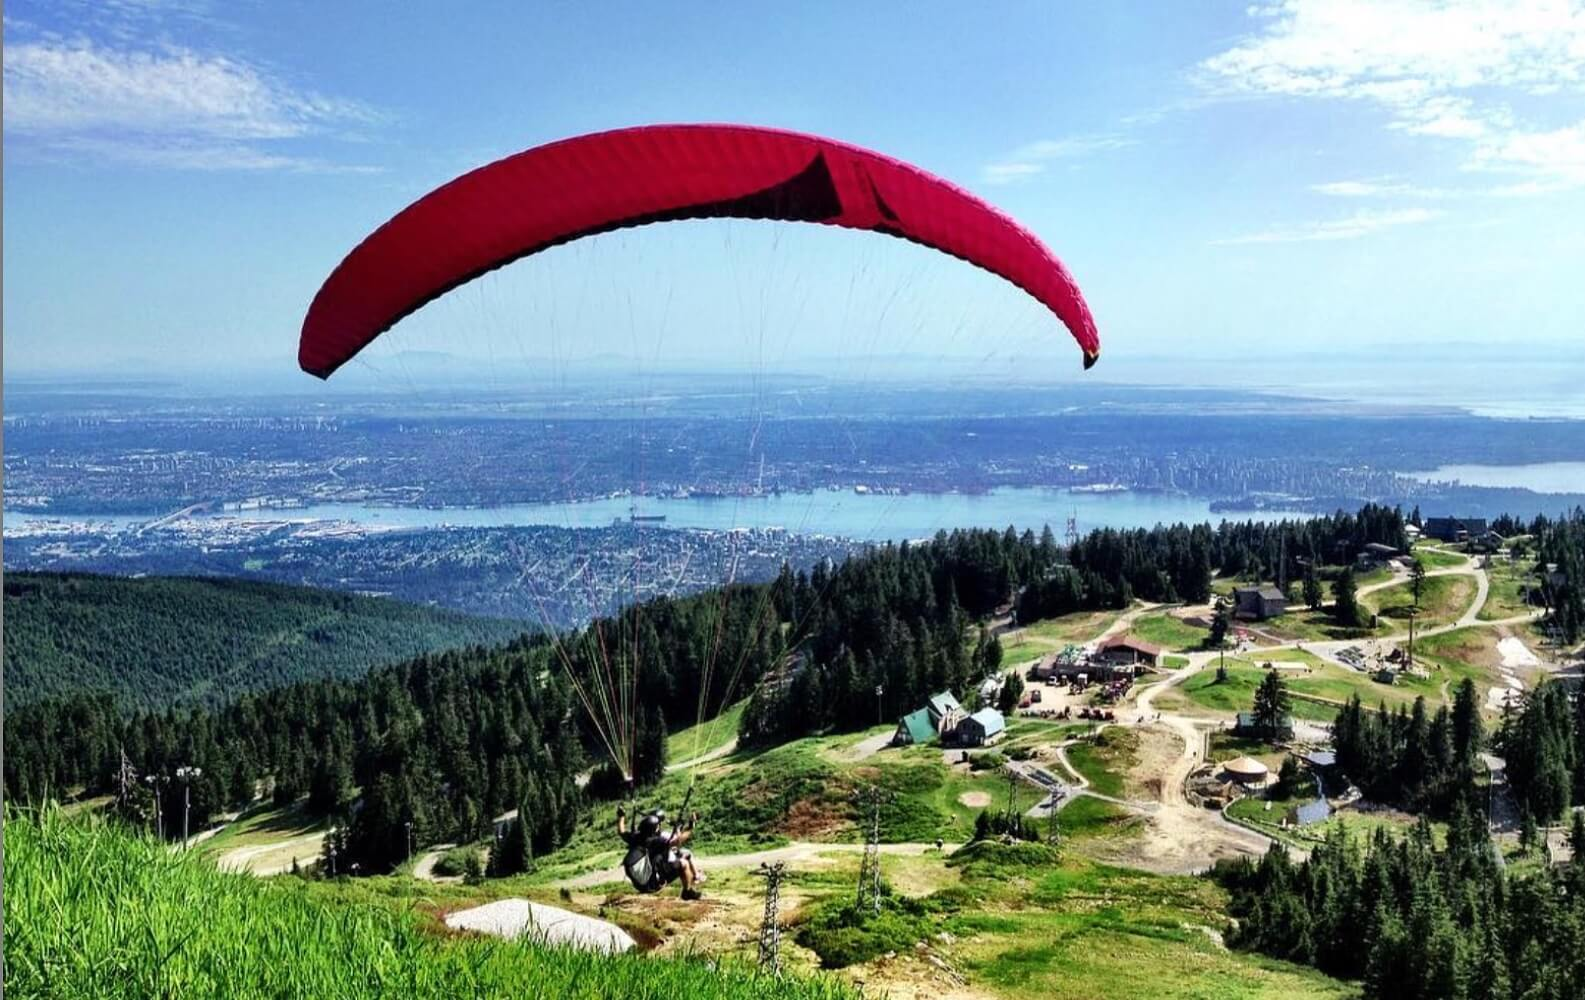 A man paraglides off the peak of Grouse Mountain